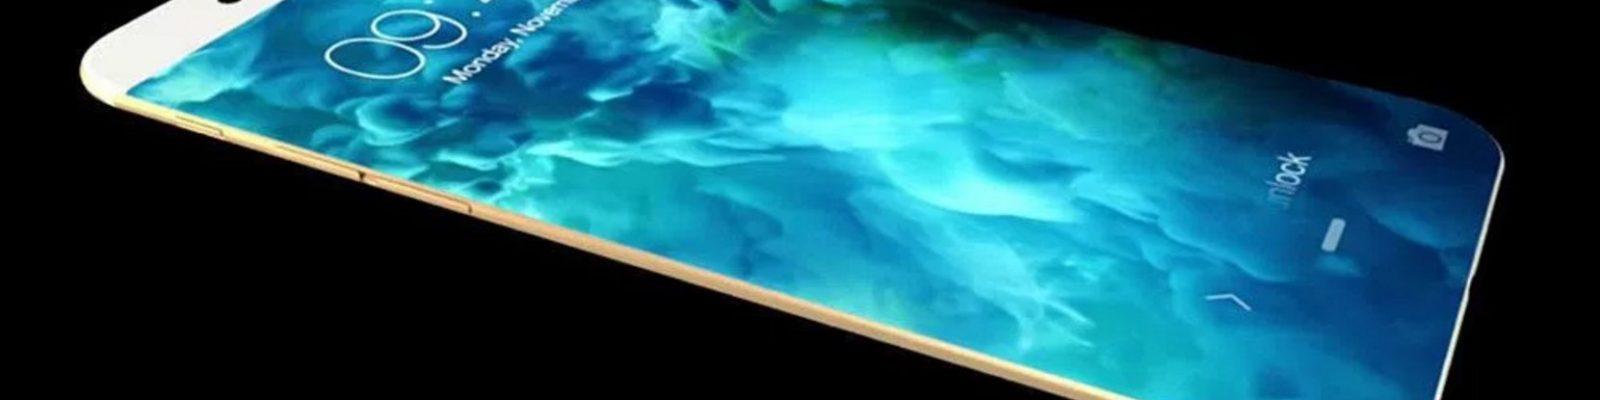 oled panel za iPhone 8